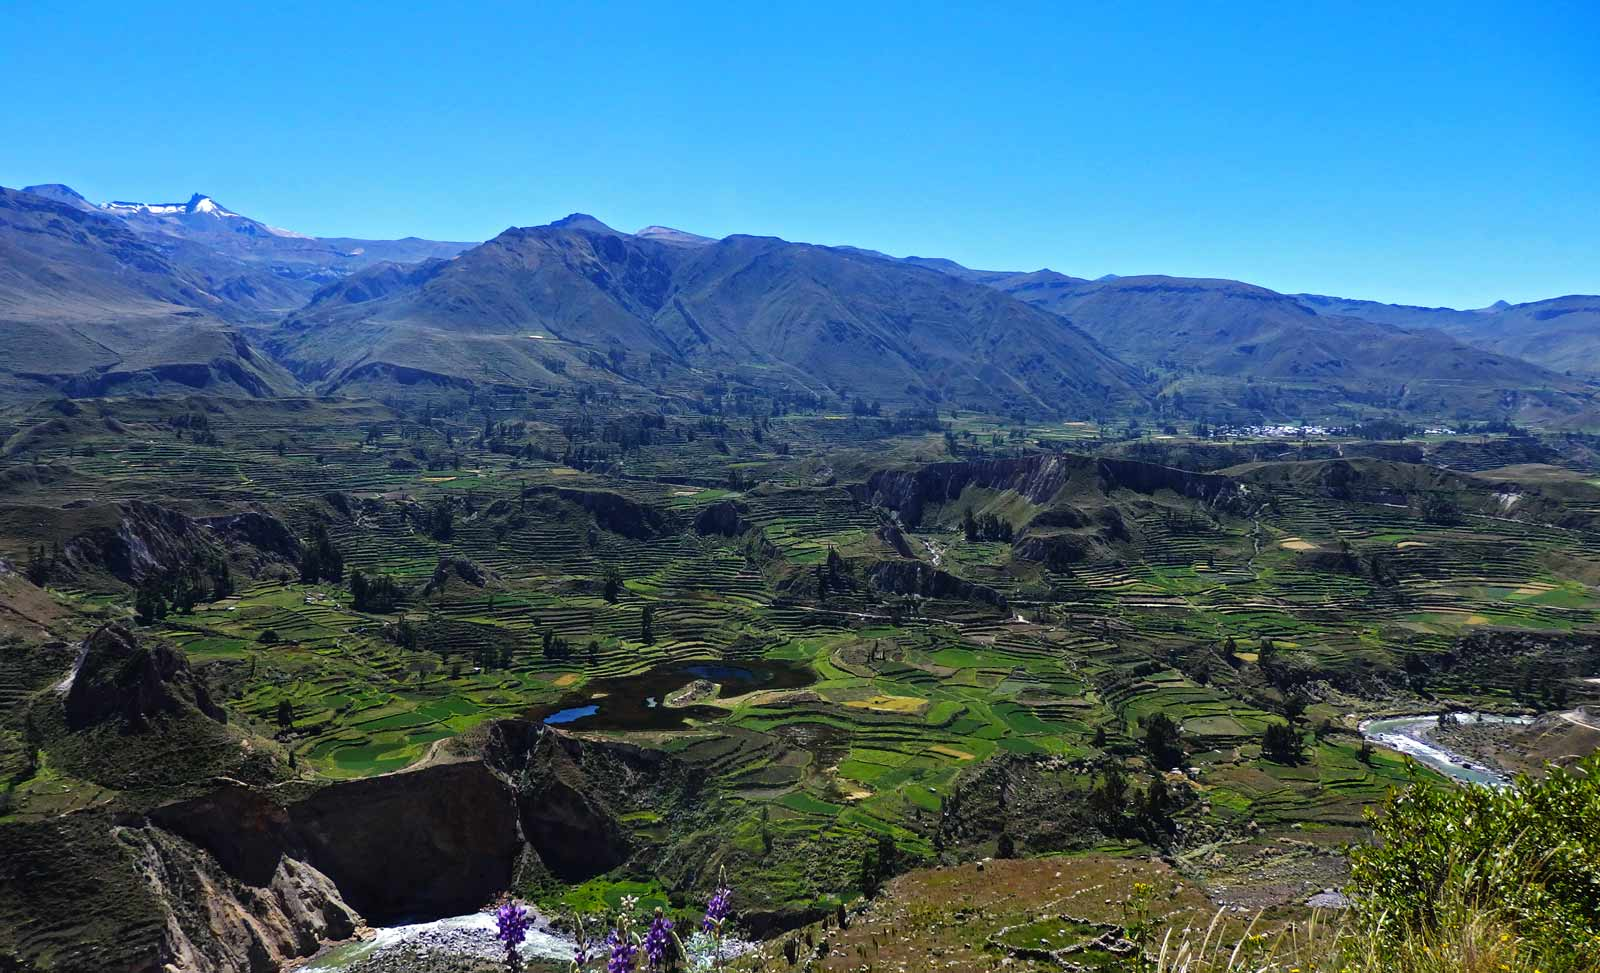 Here's why trekking Colca Canyon took my breath away. A beautiful view of fields and lush green gardens